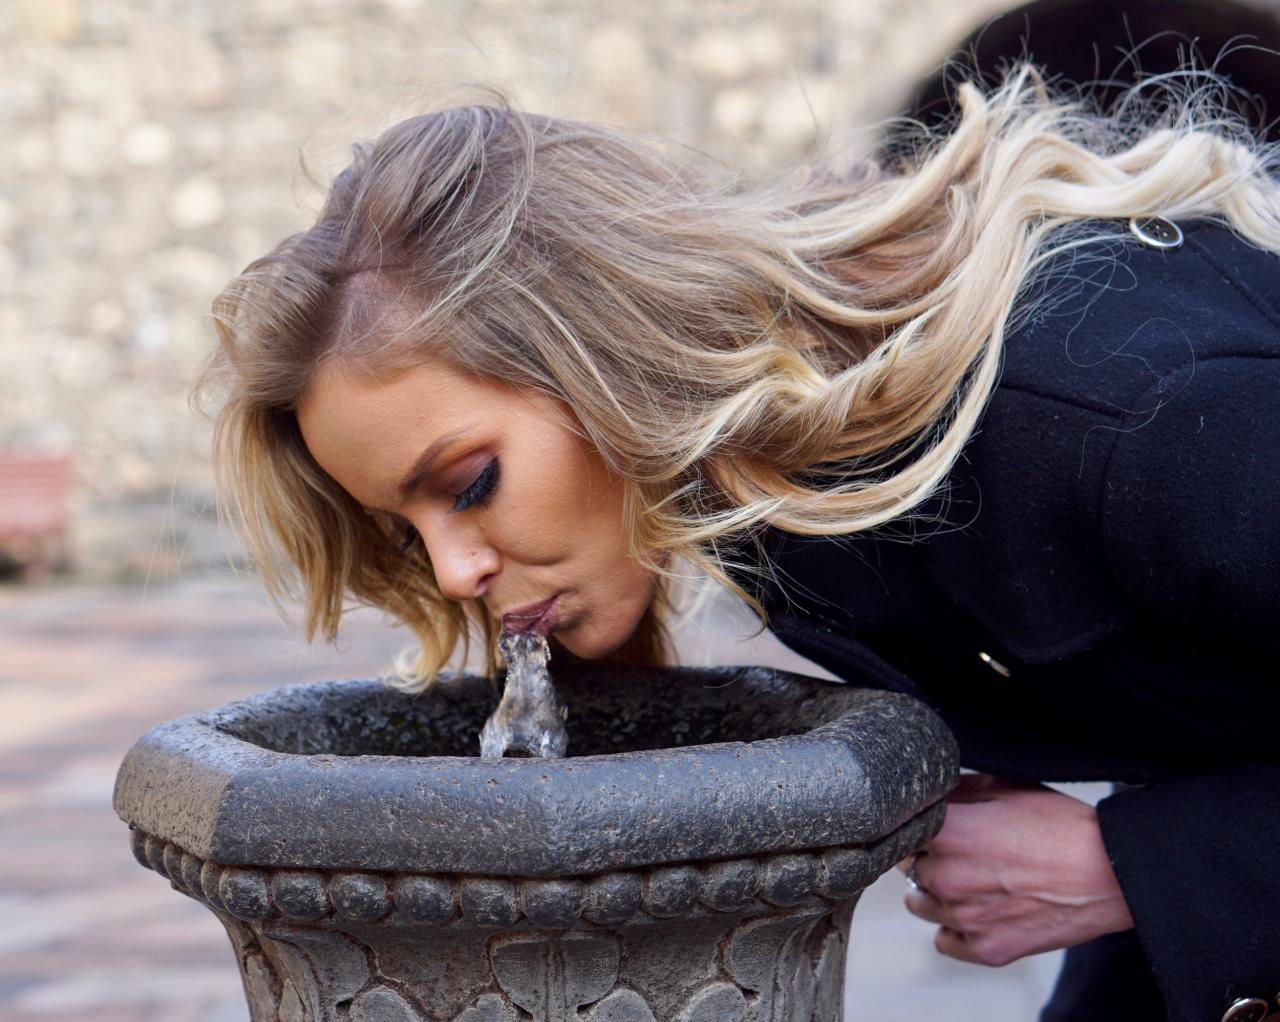 You must drink from the drinking fountains, the water is the best in the world according to the Armenians.